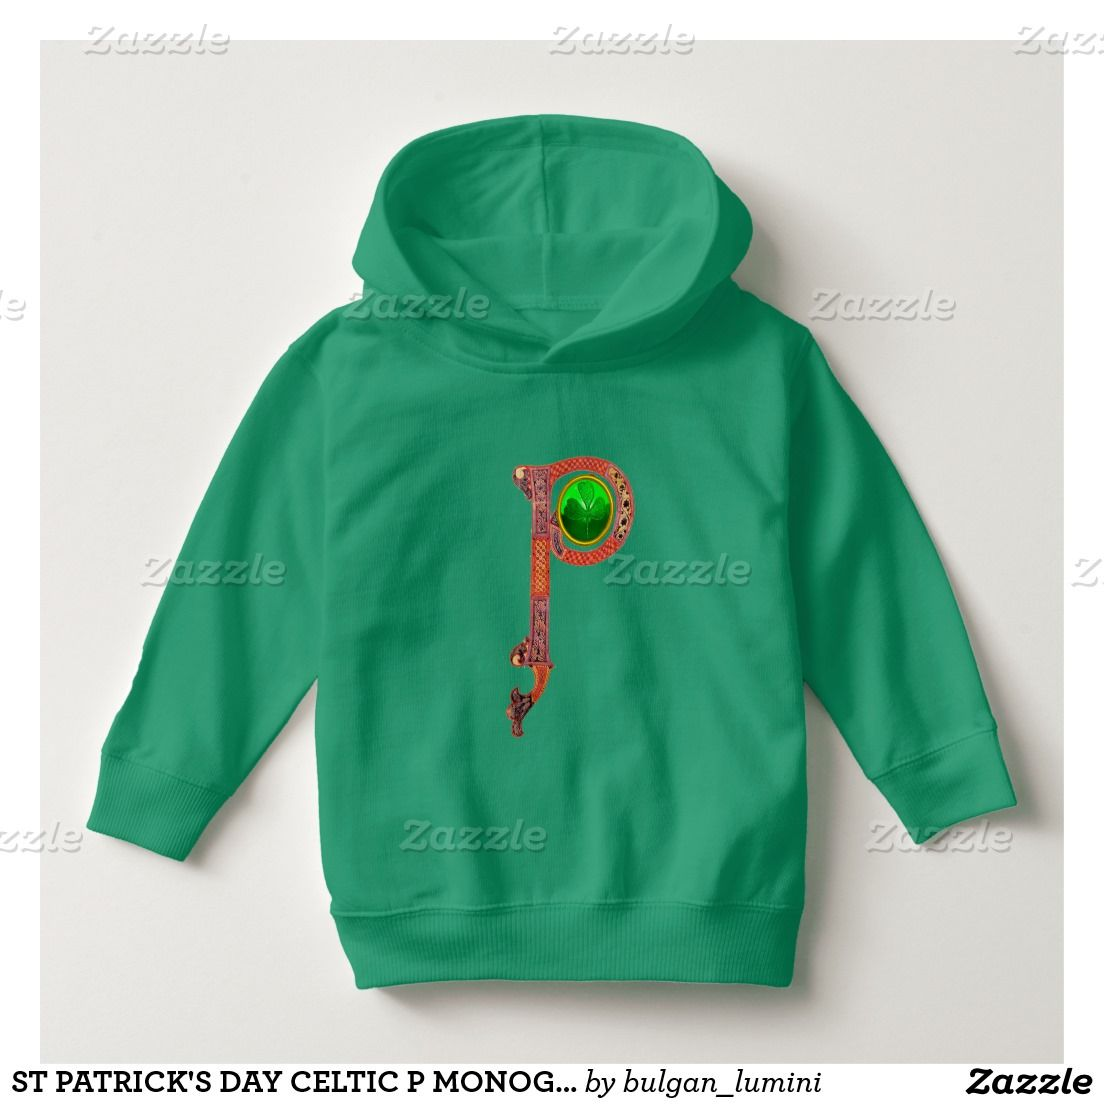 96bd18b0f956 ST PATRICK S DAY CELTIC P MONOGRAM WITH SHAMROCK HOODIE